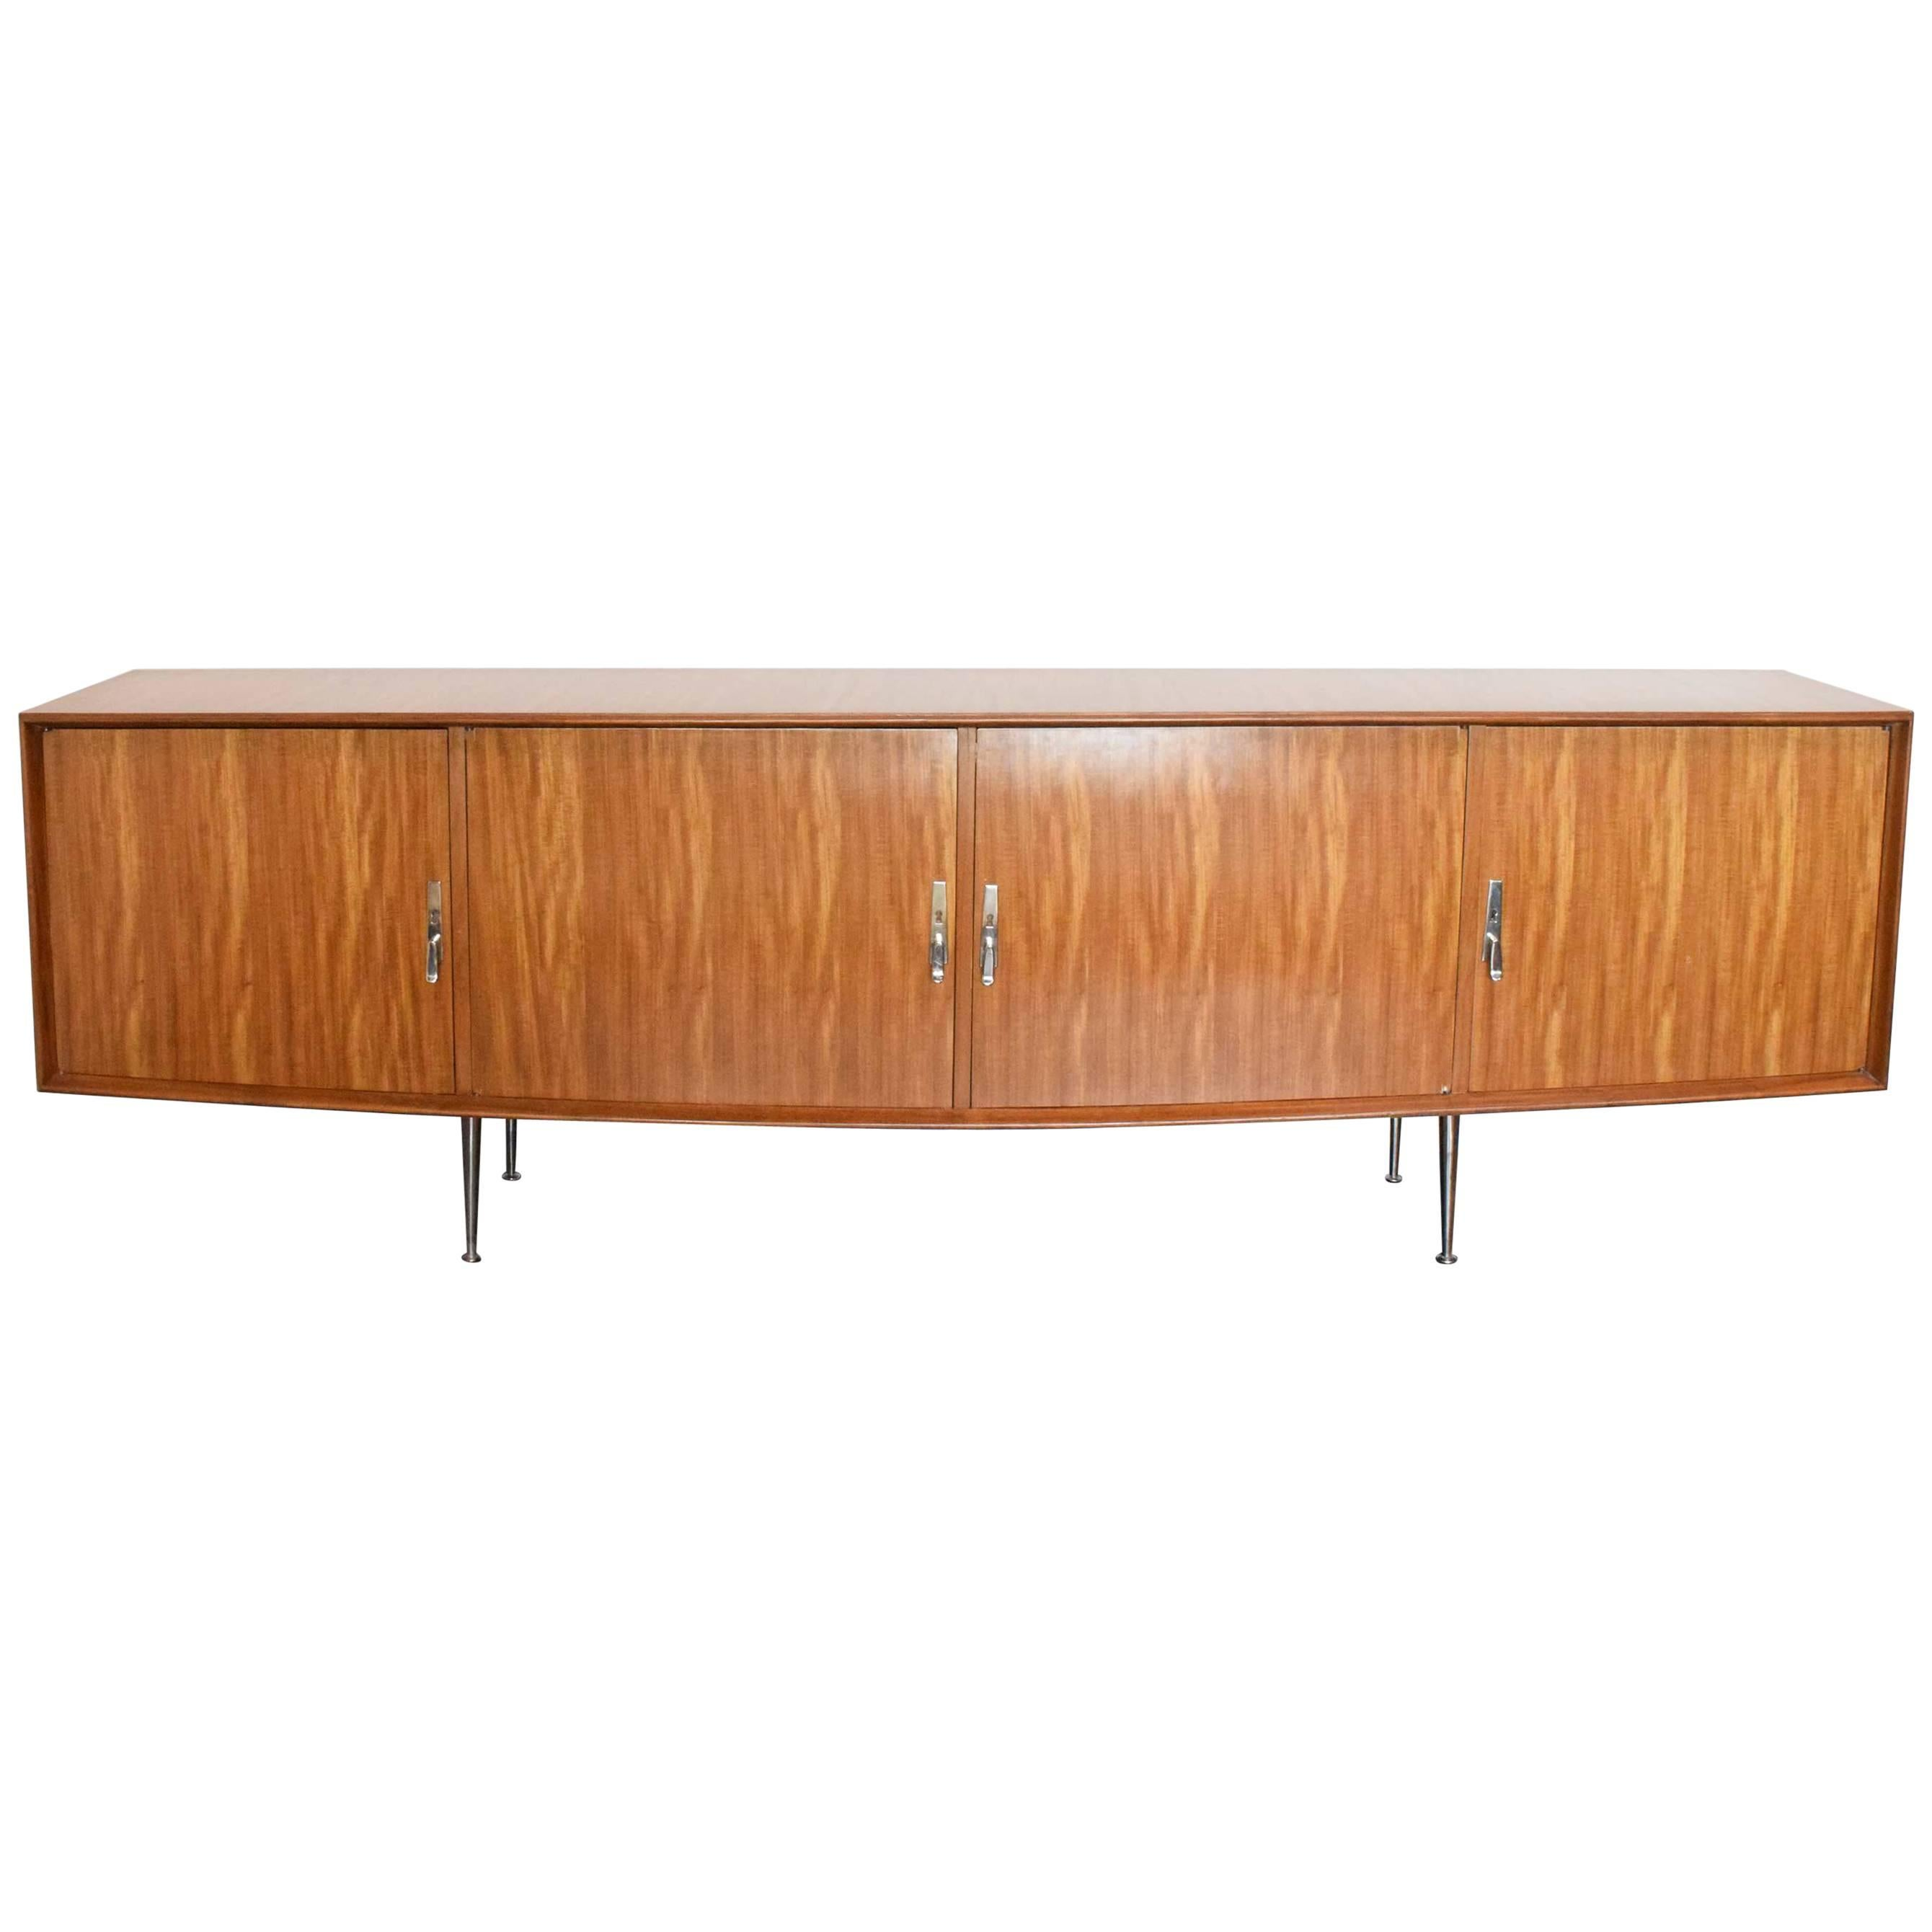 Buffet Sideboard Fantastic Furniture Fantastic Sideboard In African Amazaque Wood Circa 1960s